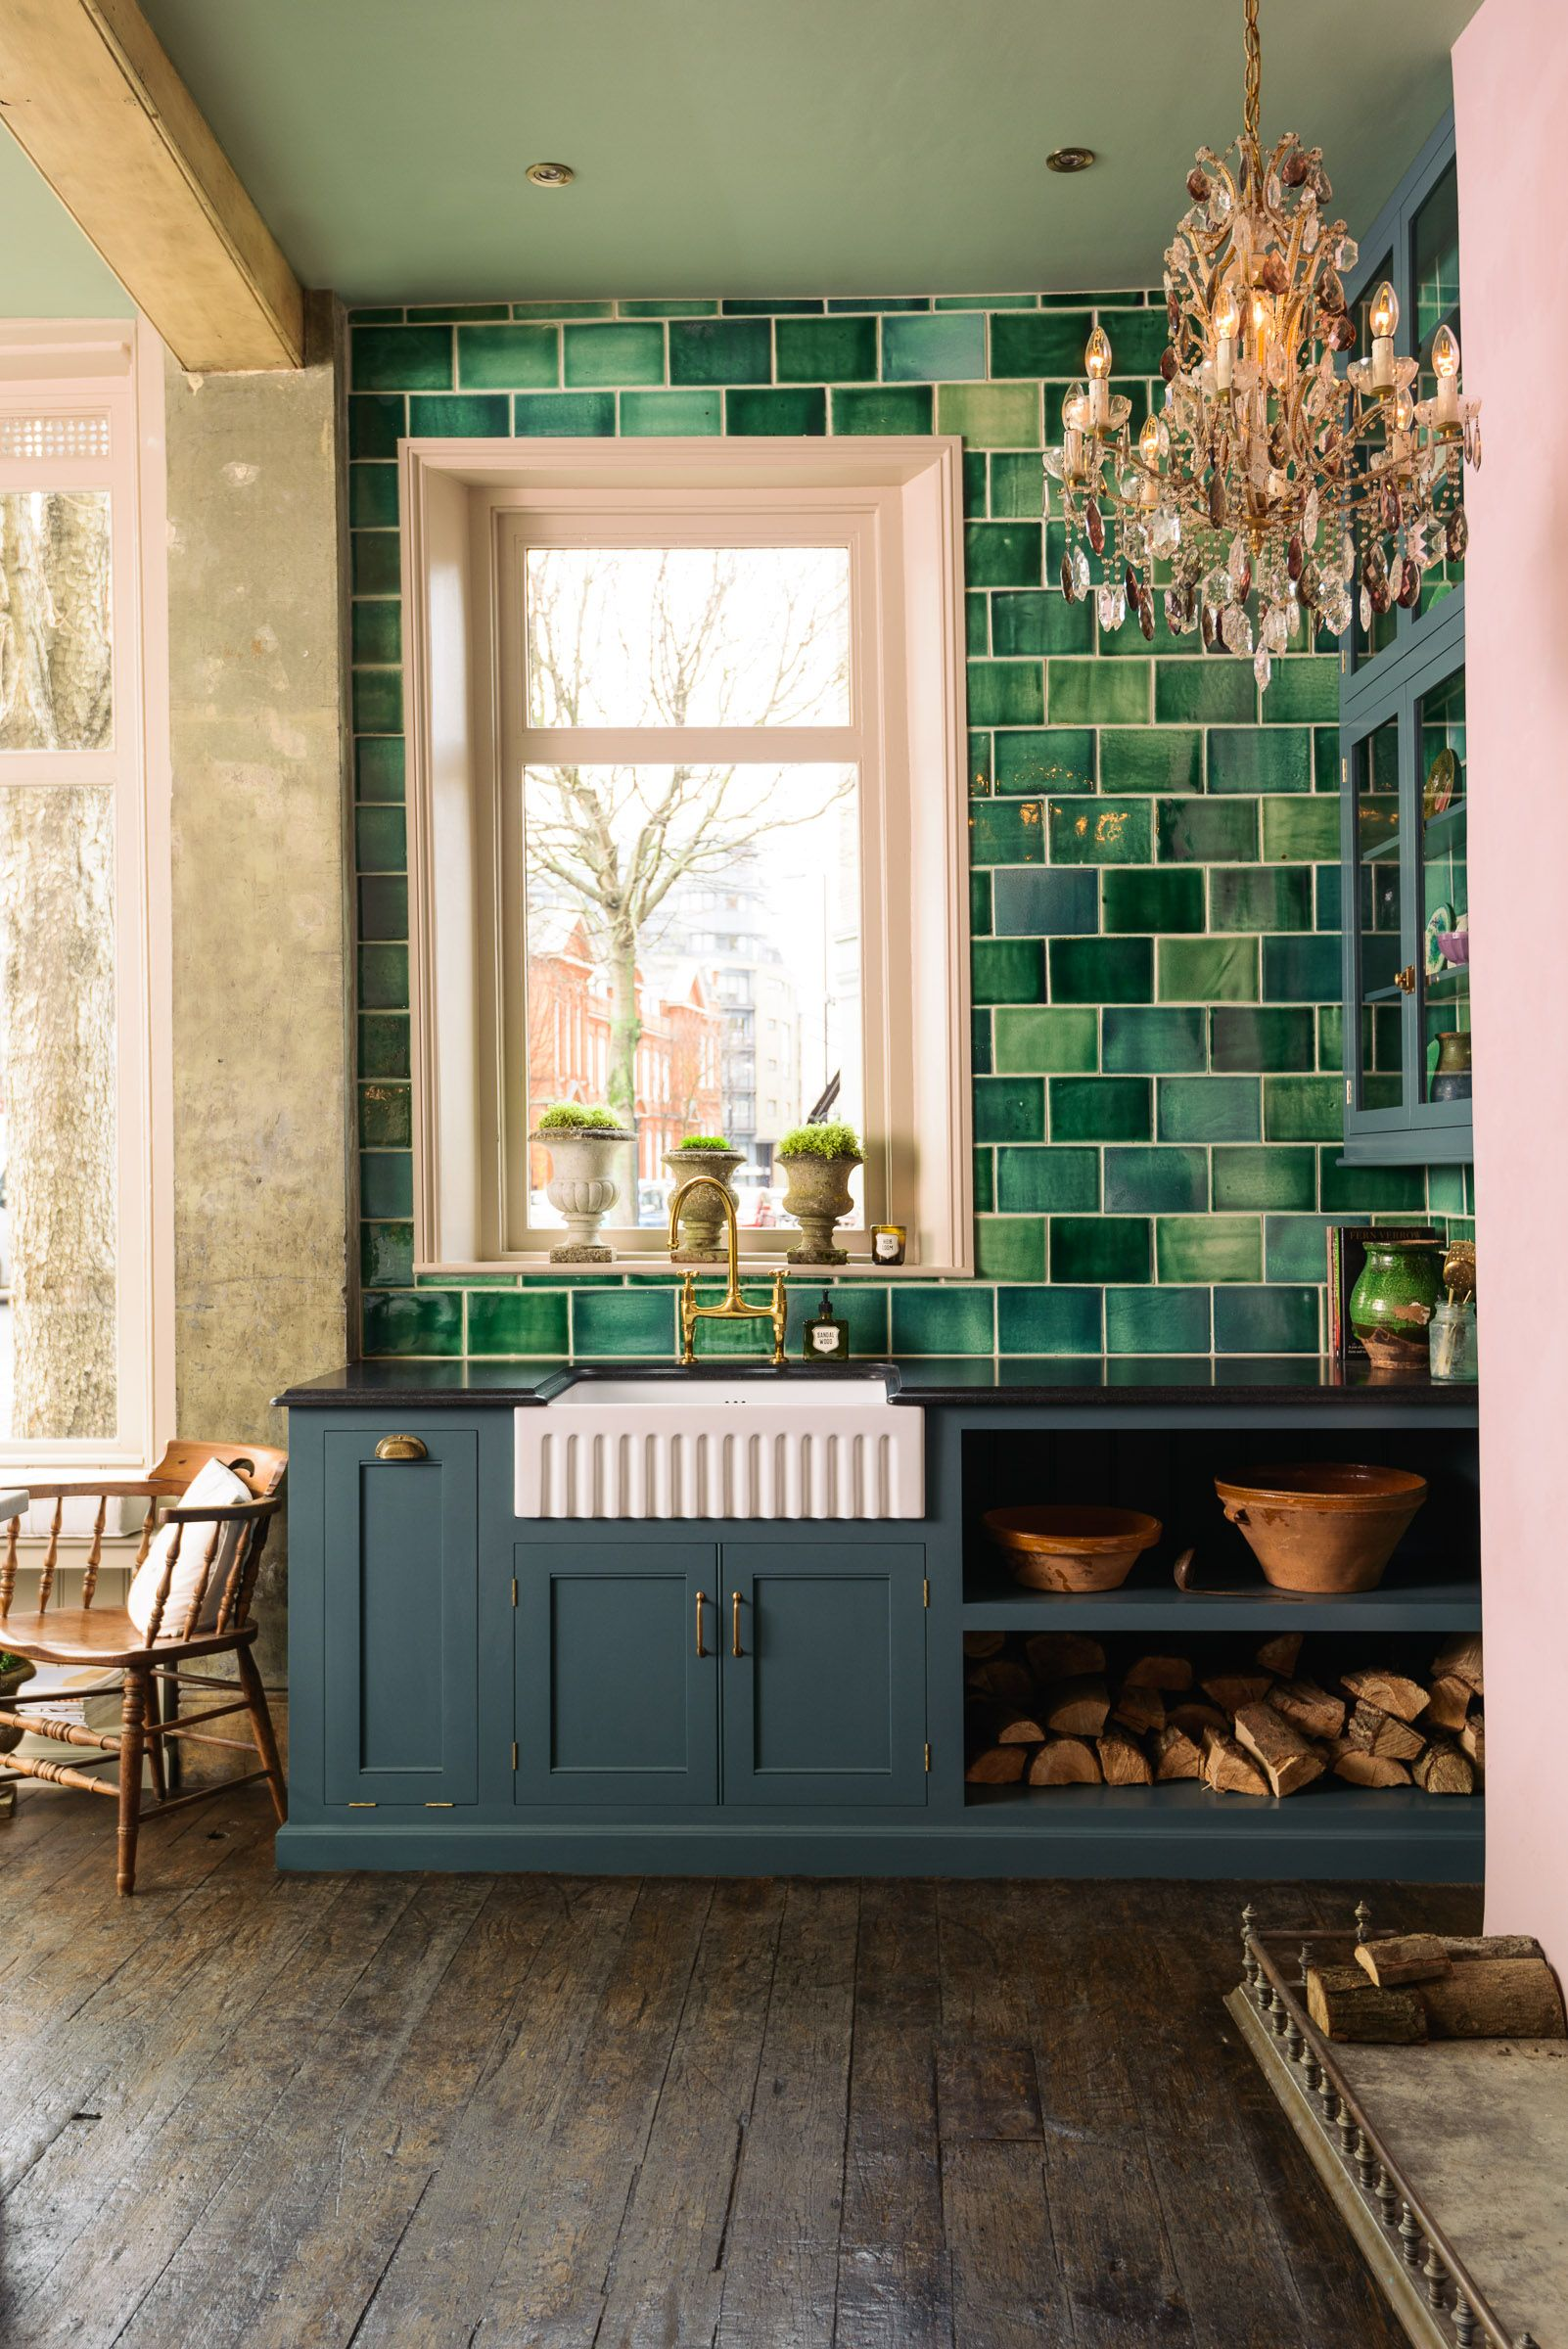 Green Metro Tiles Deep Blue Cupboards An Antique Chandelier And